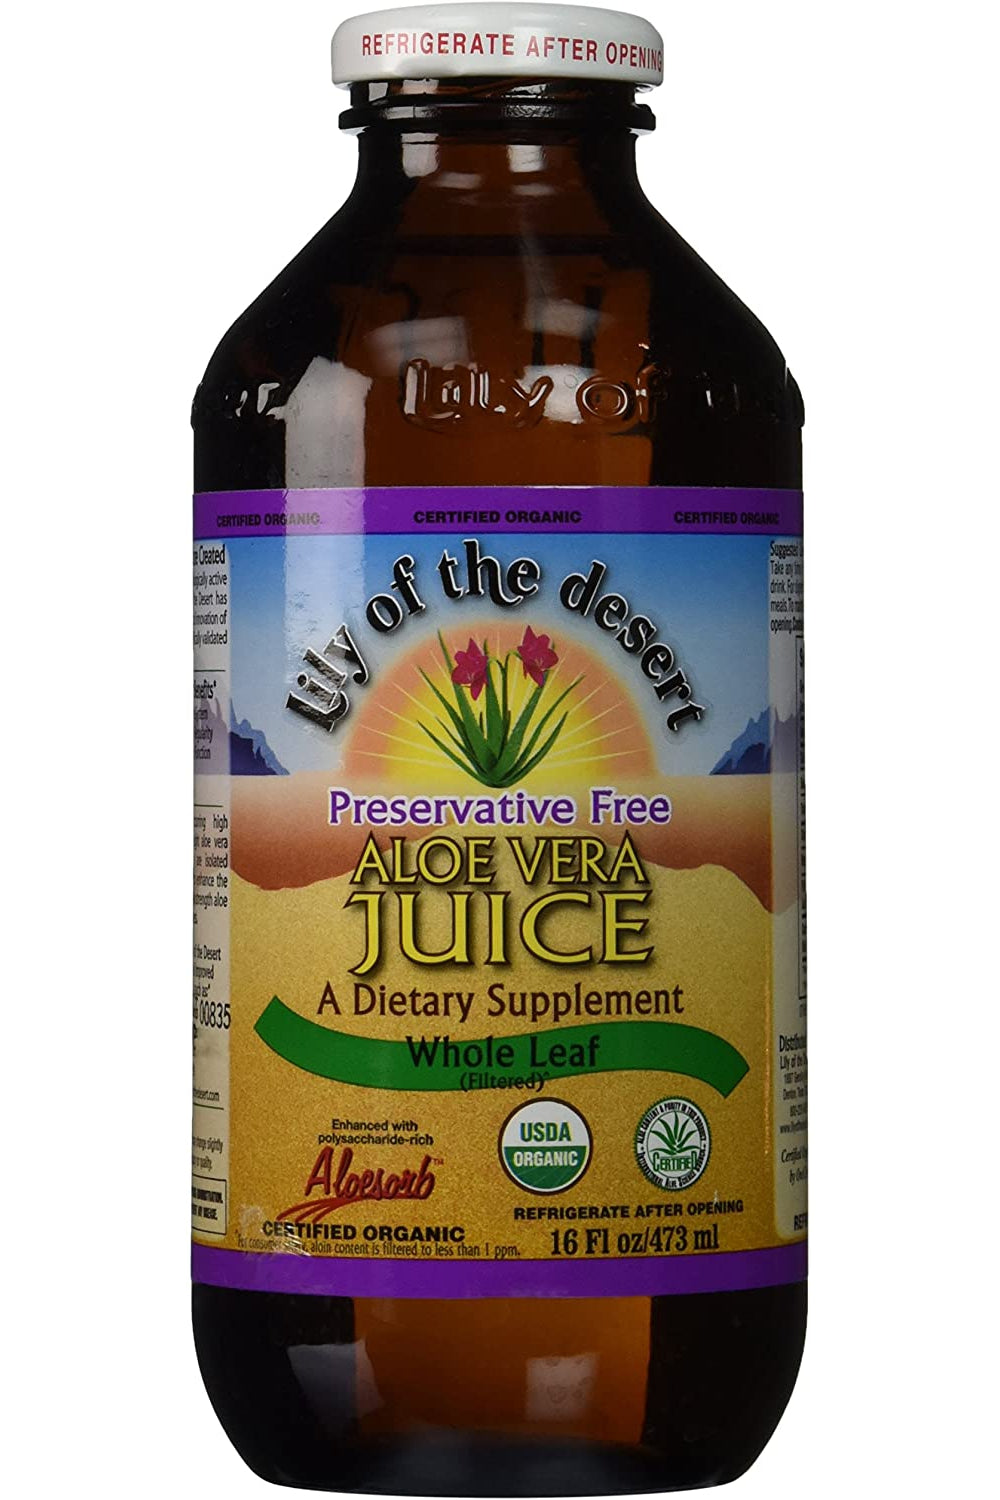 Lily of the Desert Aloe Vera Juice - Whole Leaf 473ml